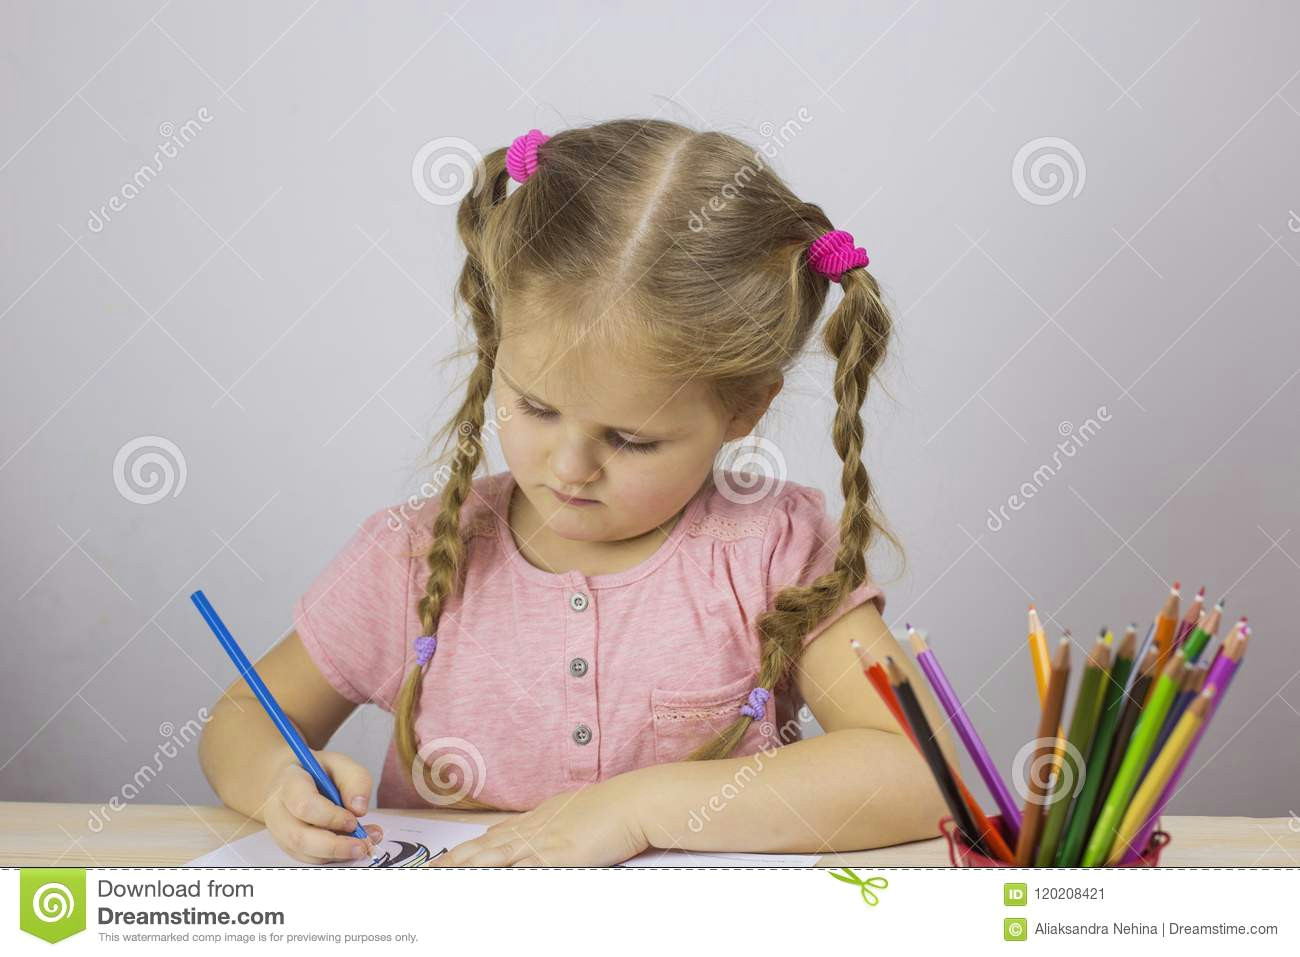 young girl draws colored pencils education concept young girl draws colored pencils table 120208421 jpg